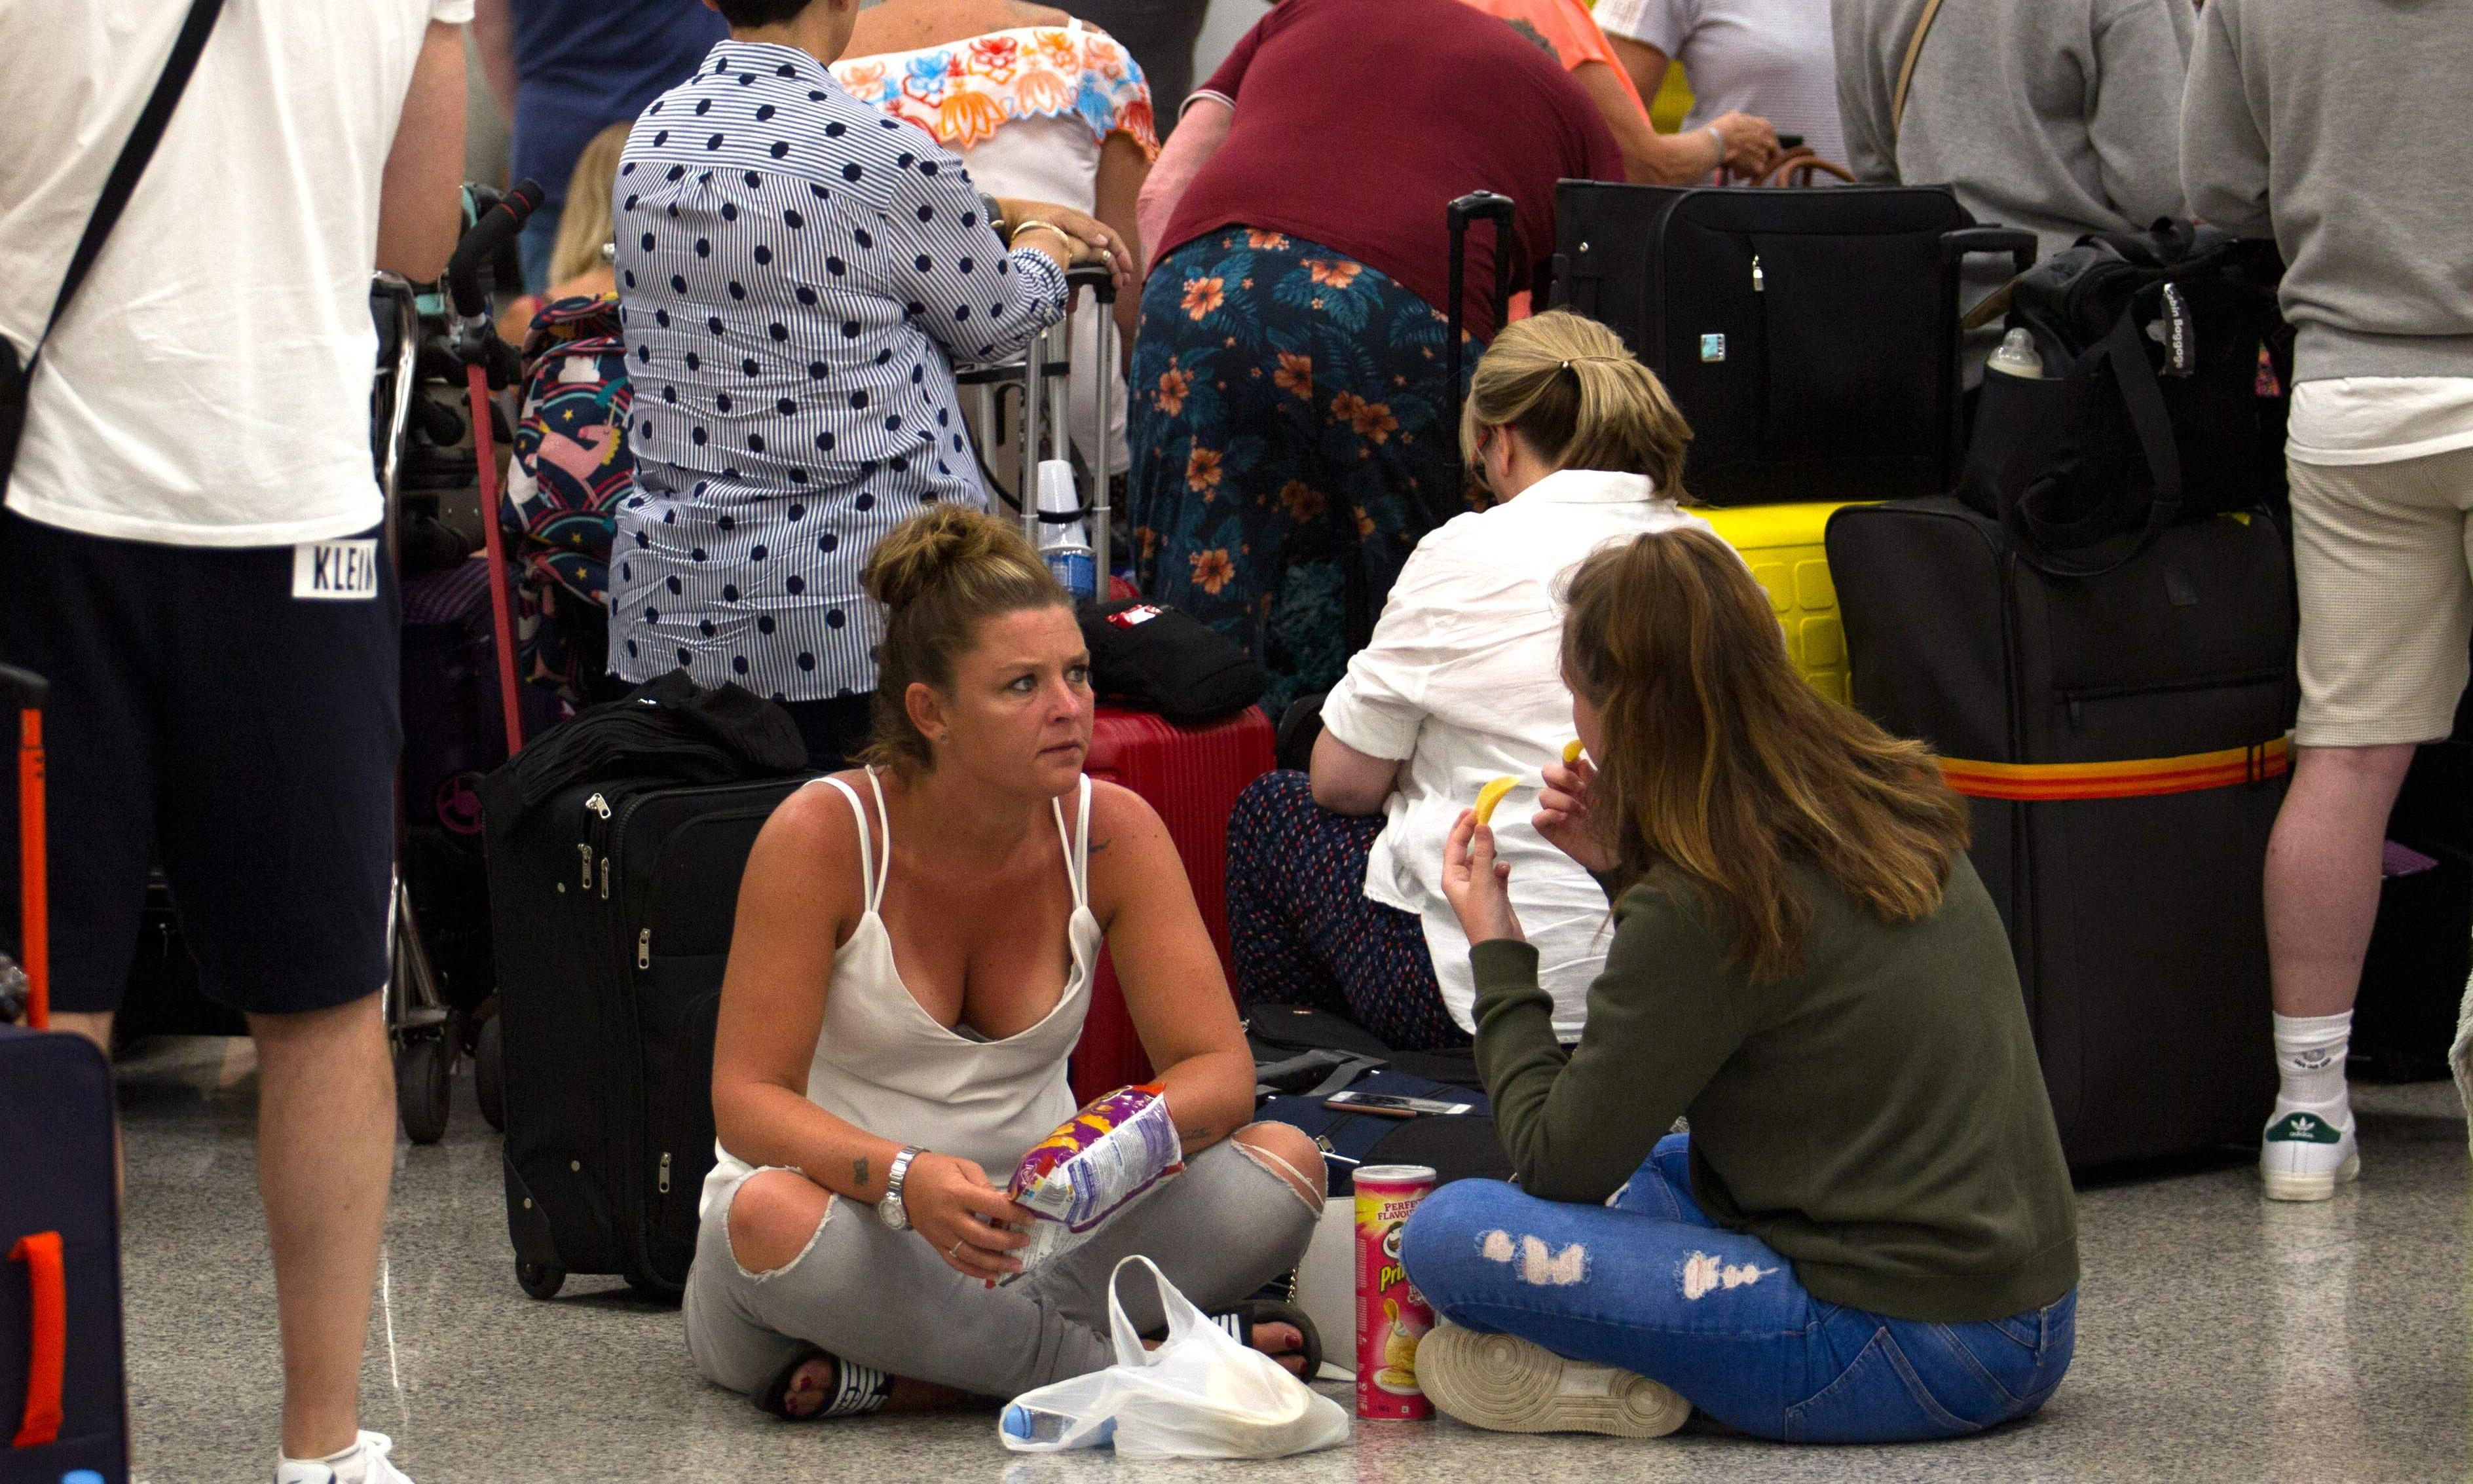 'We're fuming': long wait for Thomas Cook travellers in Mallorca